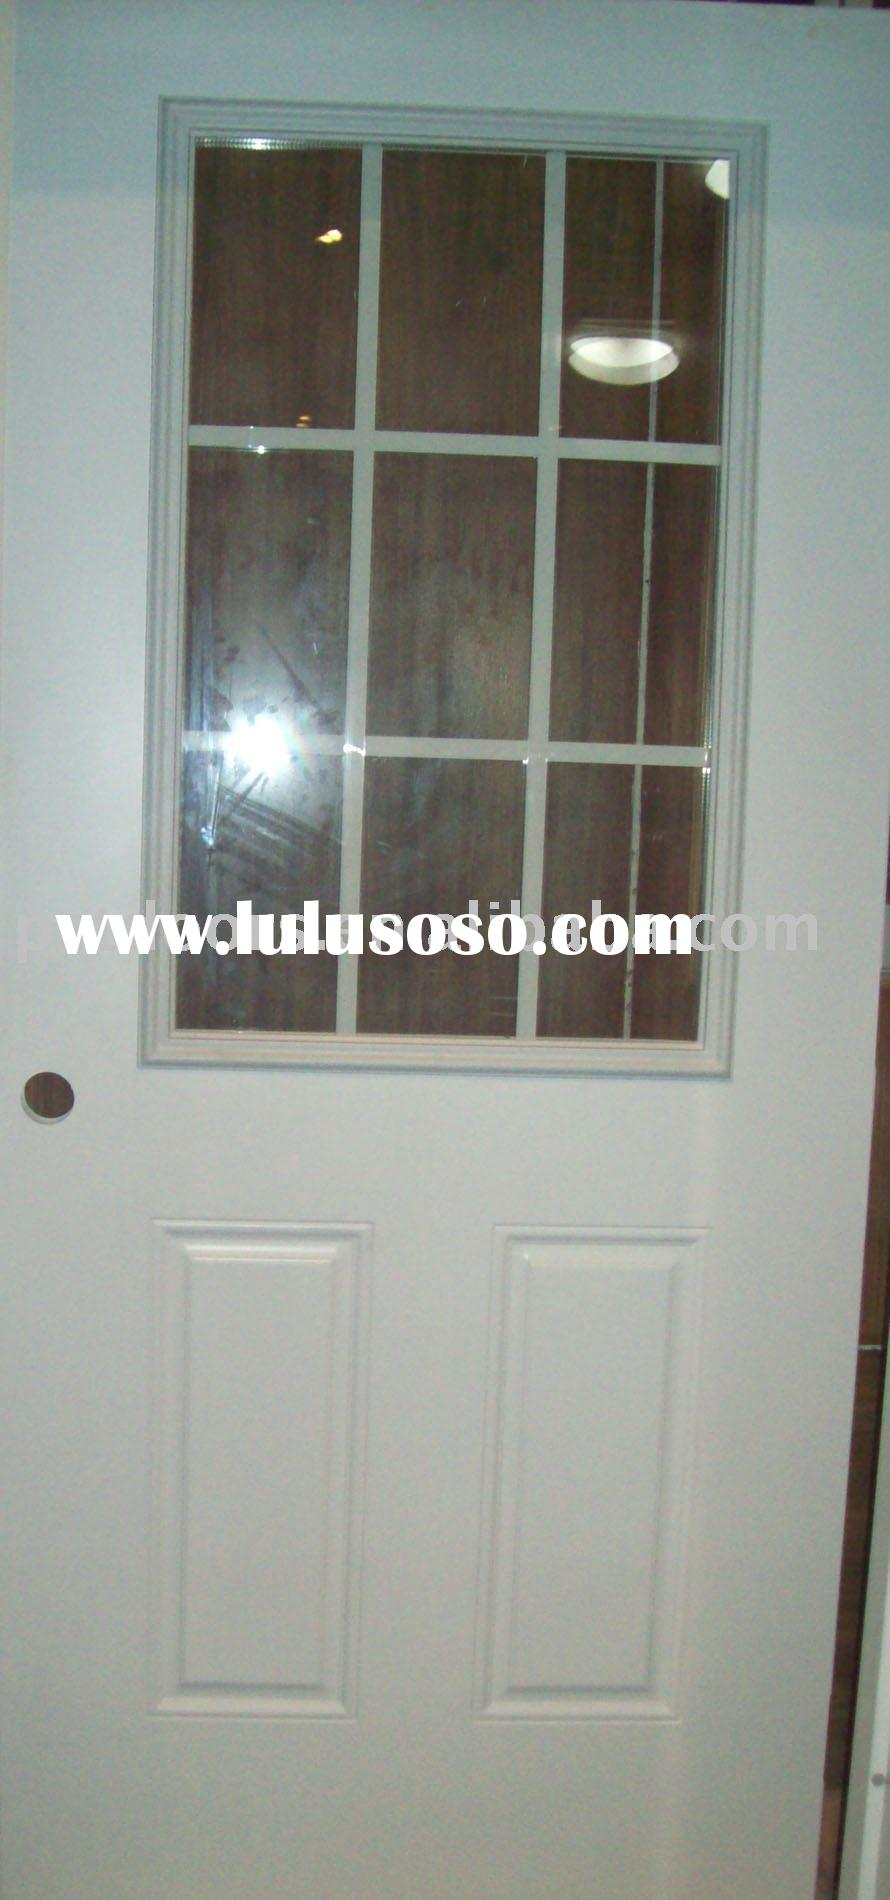 Steel Door Window Insert Pile Weather Strip Wool Pile For